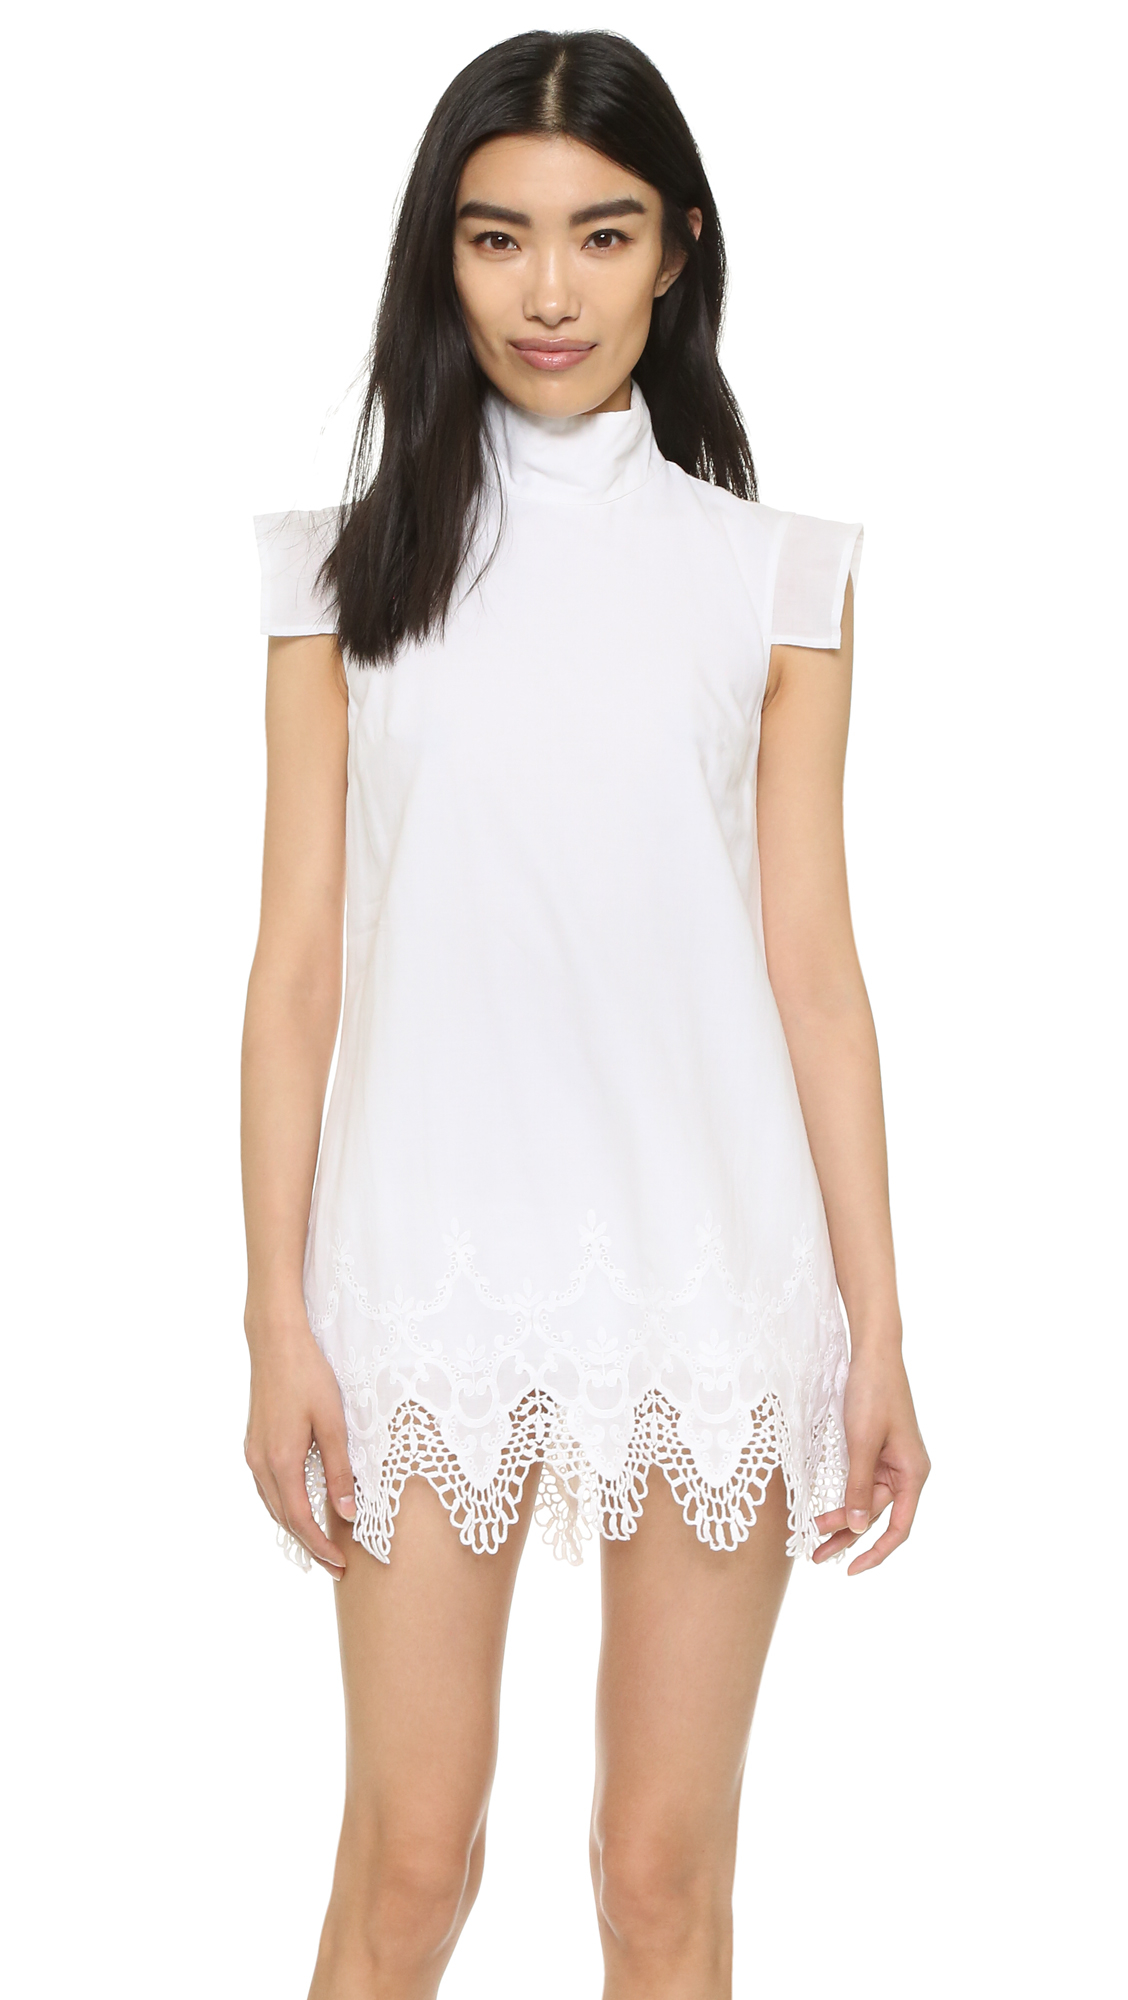 Mlm label Wandering Dress in White